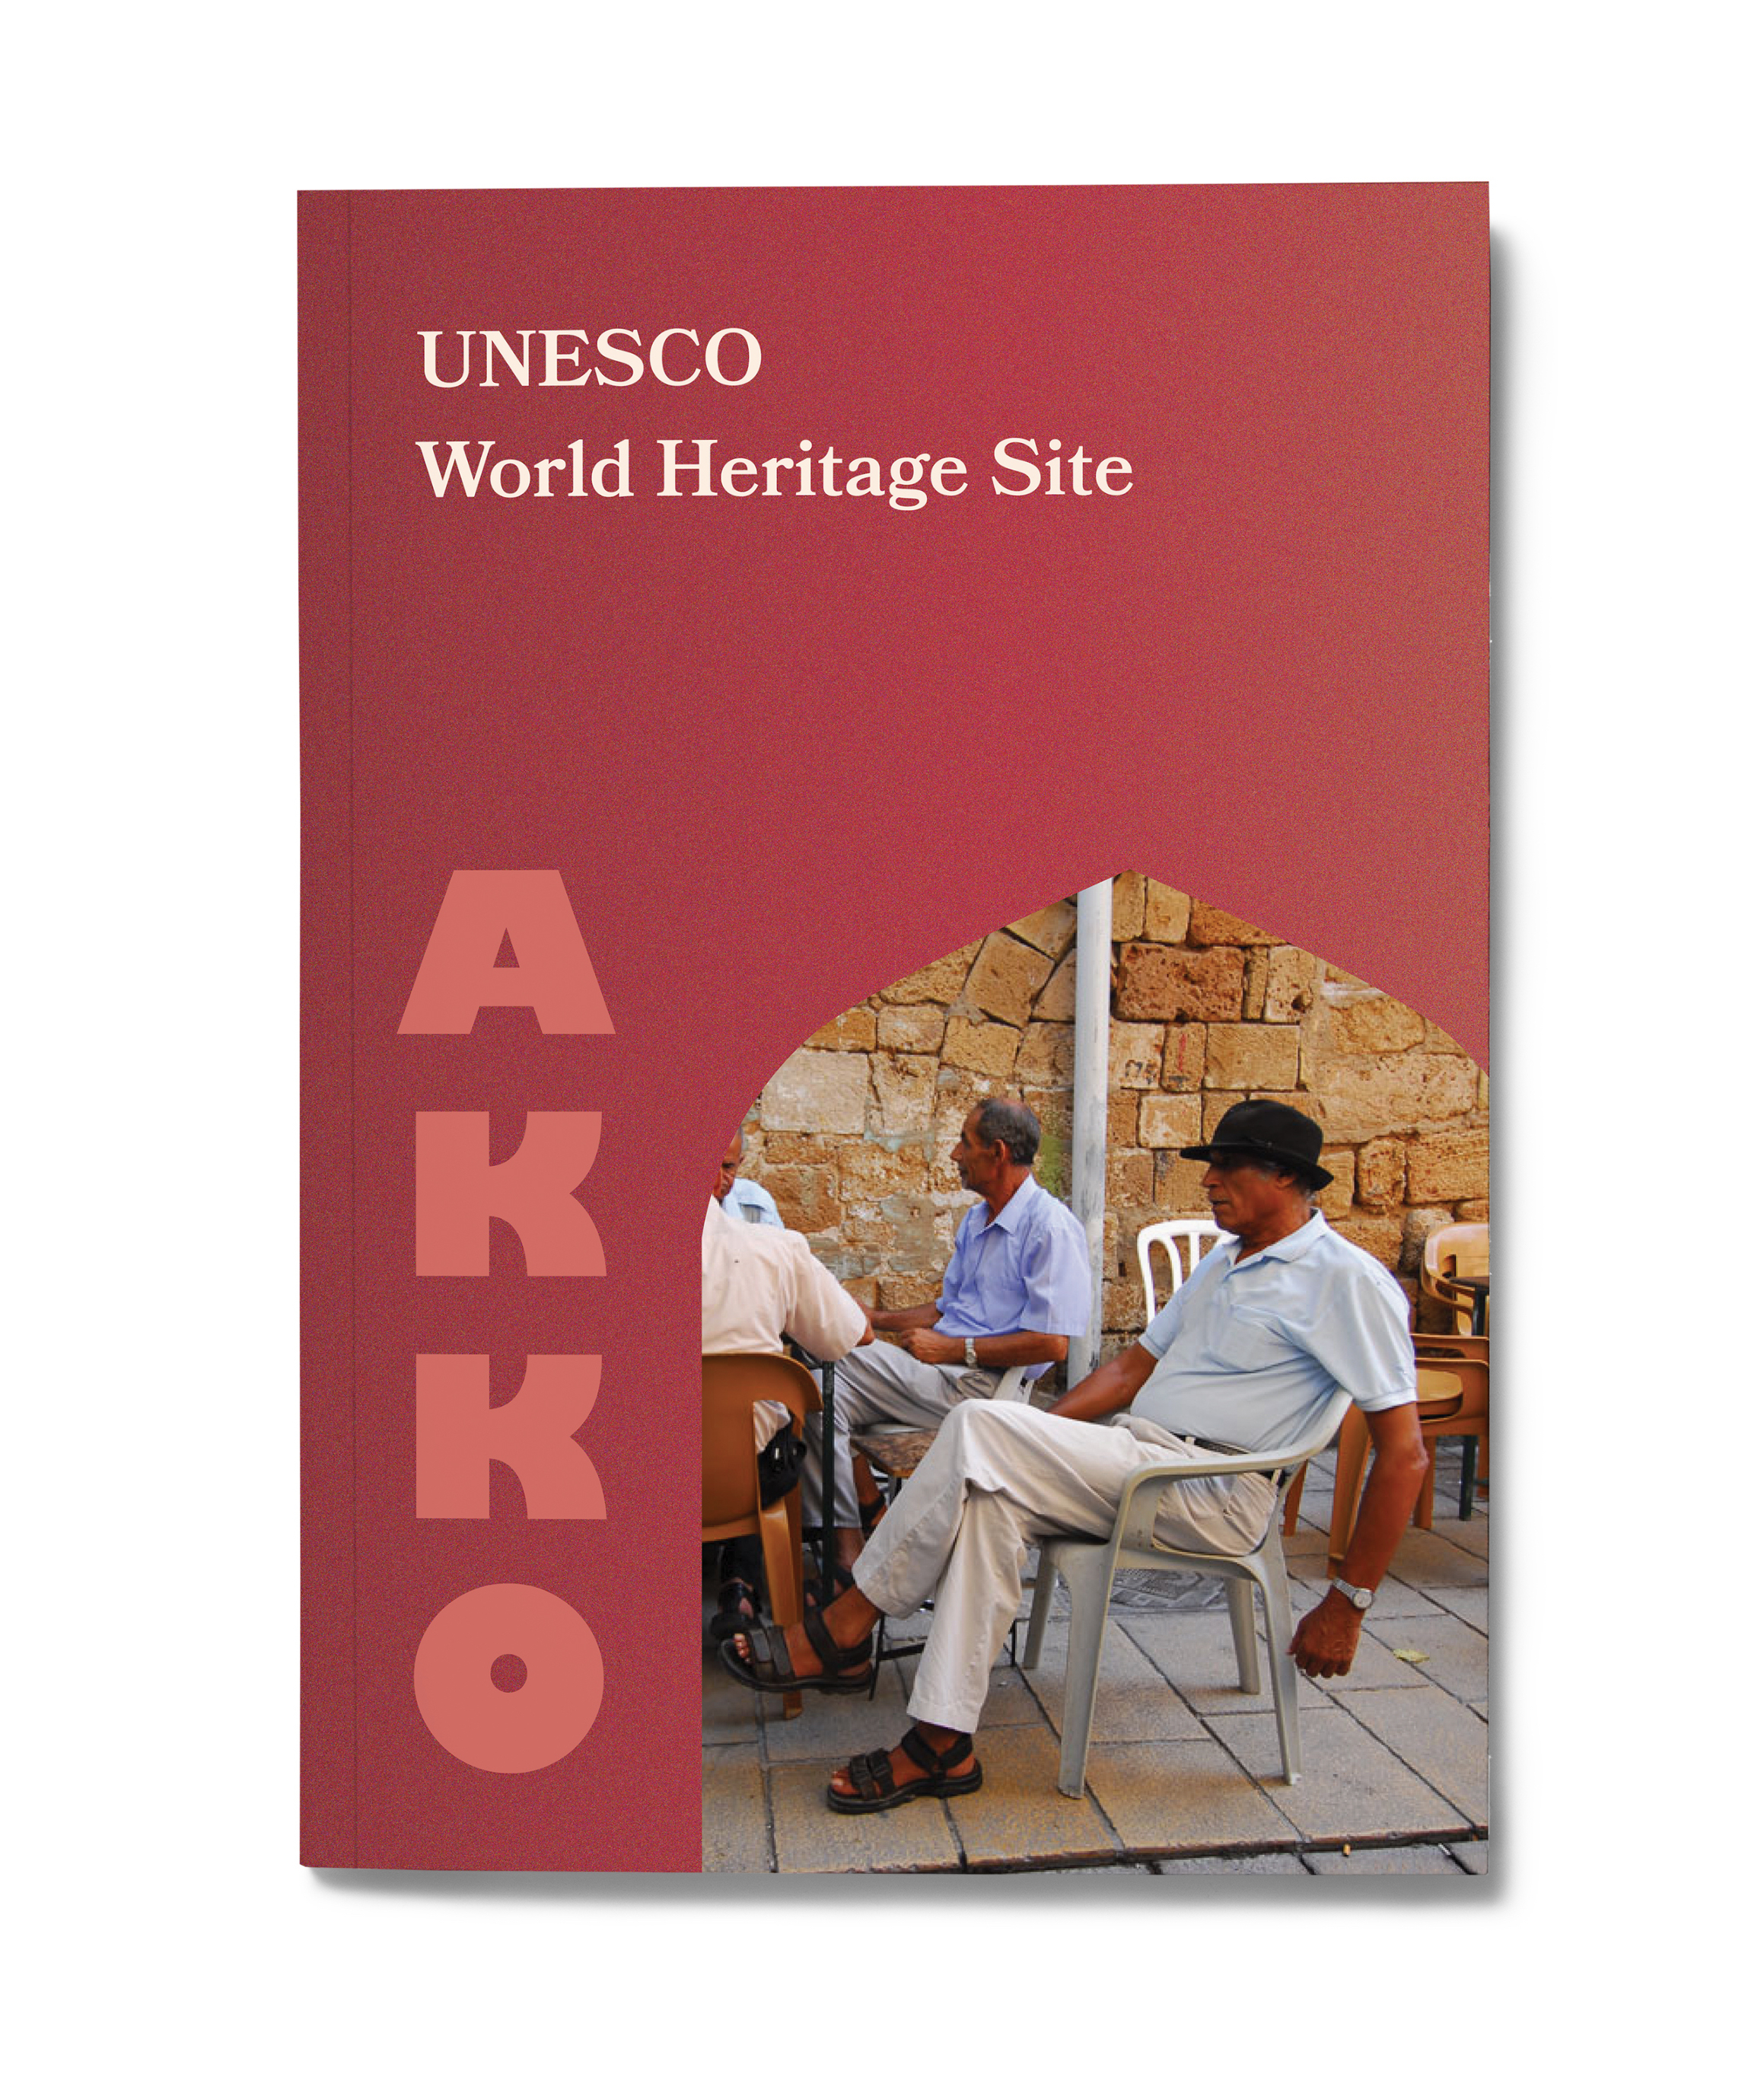 - UNESCO BOOKUsing official UNESCO text and writing about our chosen site, we were asked to design a book of this information and imagery, distinguishing the different topics.